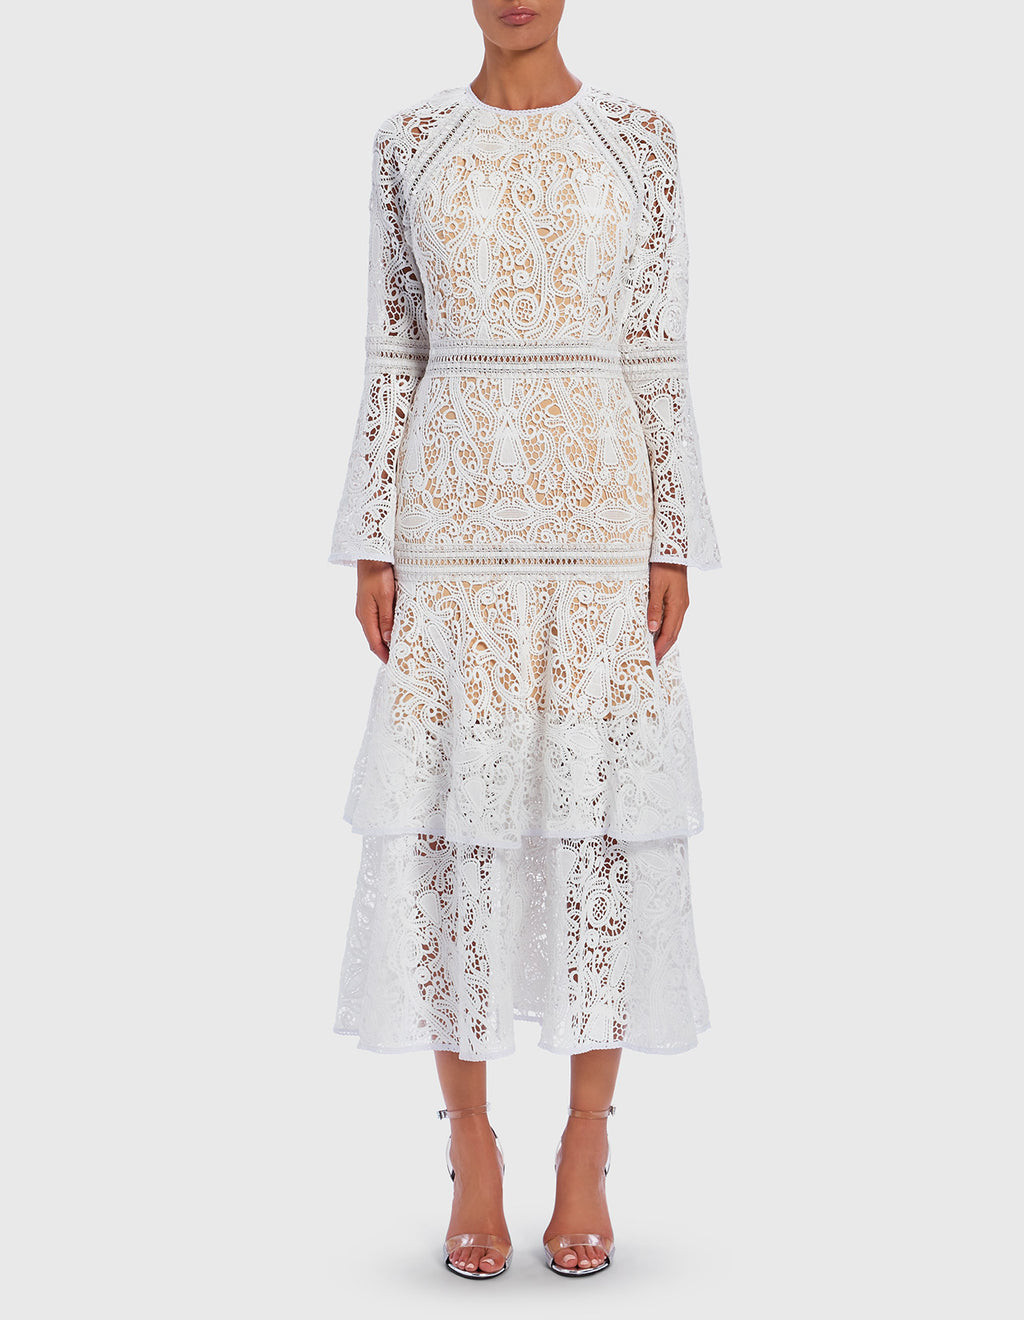 Forever Unique Millie White Lace Midi Dress